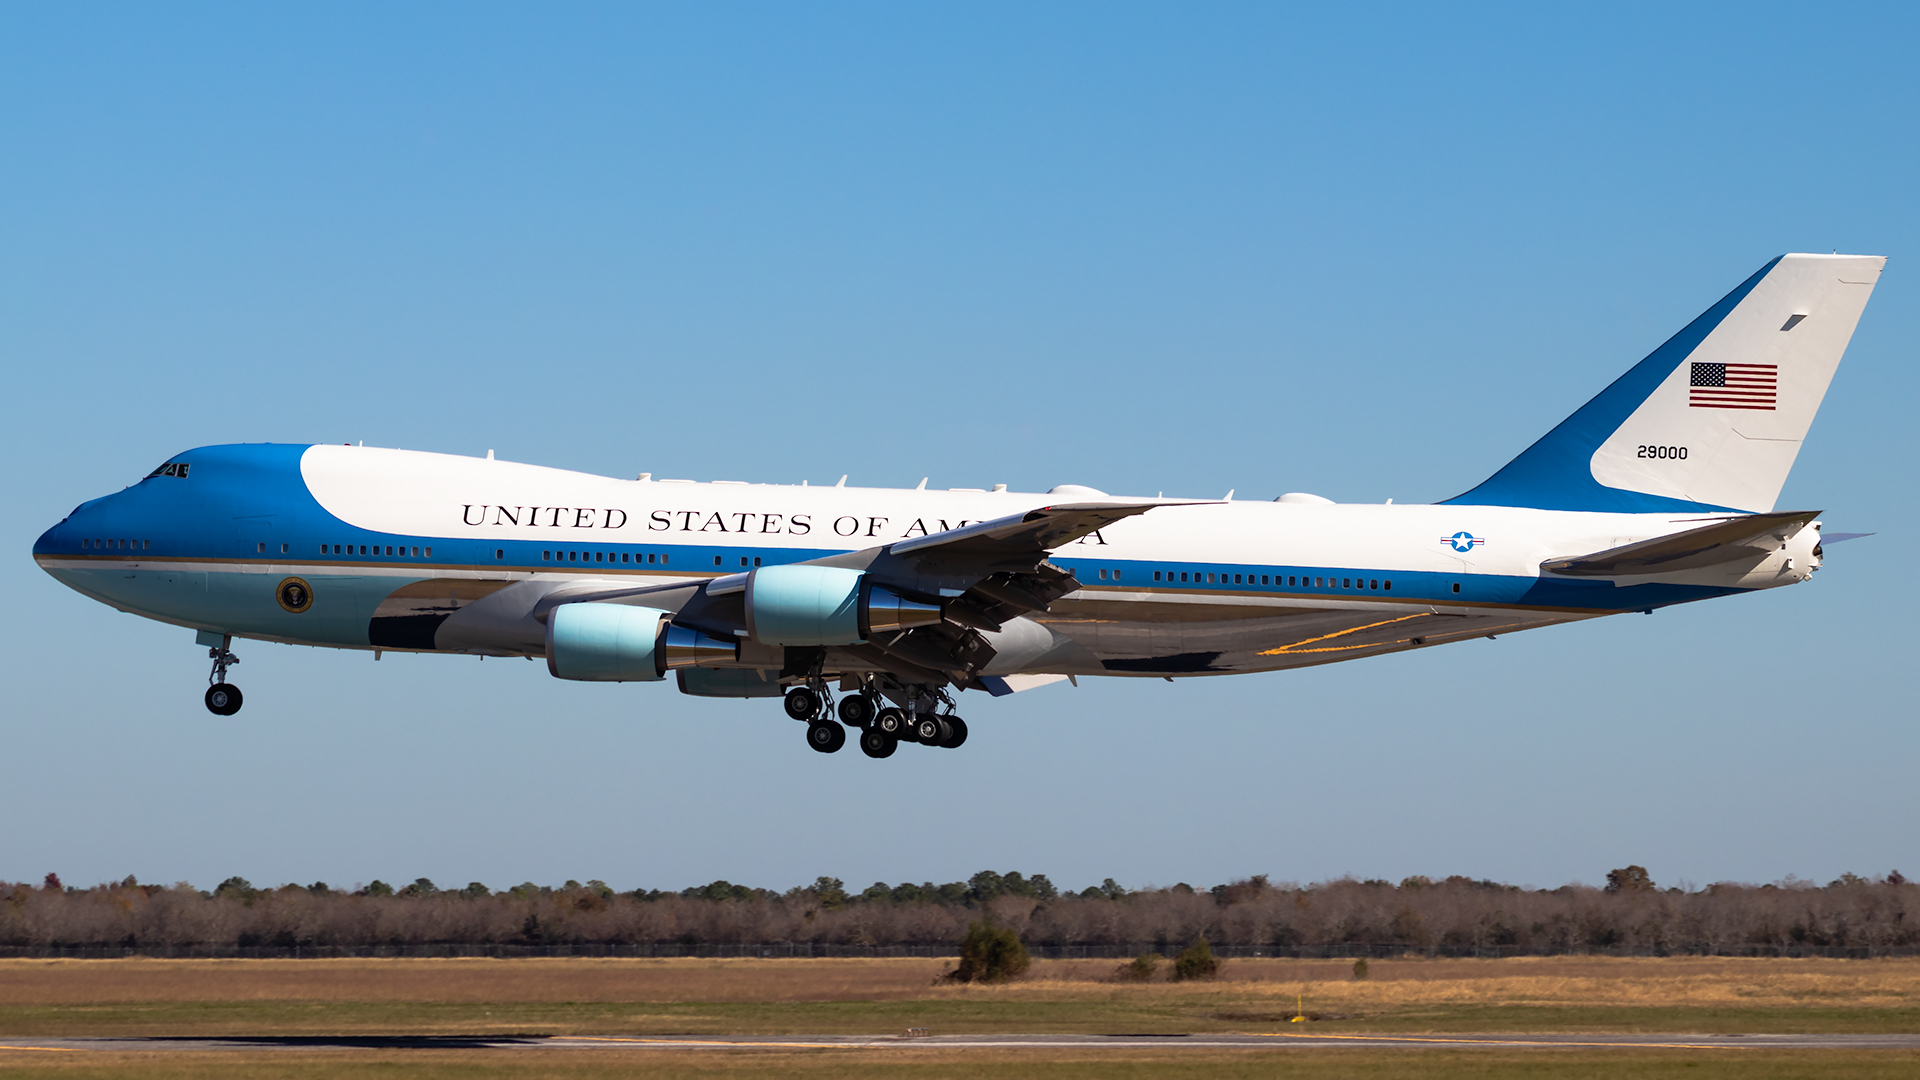 Click image for larger version.  Name:USAF VC-25 29000 (Air Force One) JetPhotos.jpg Views:18 Size:813.5 KB ID:25557